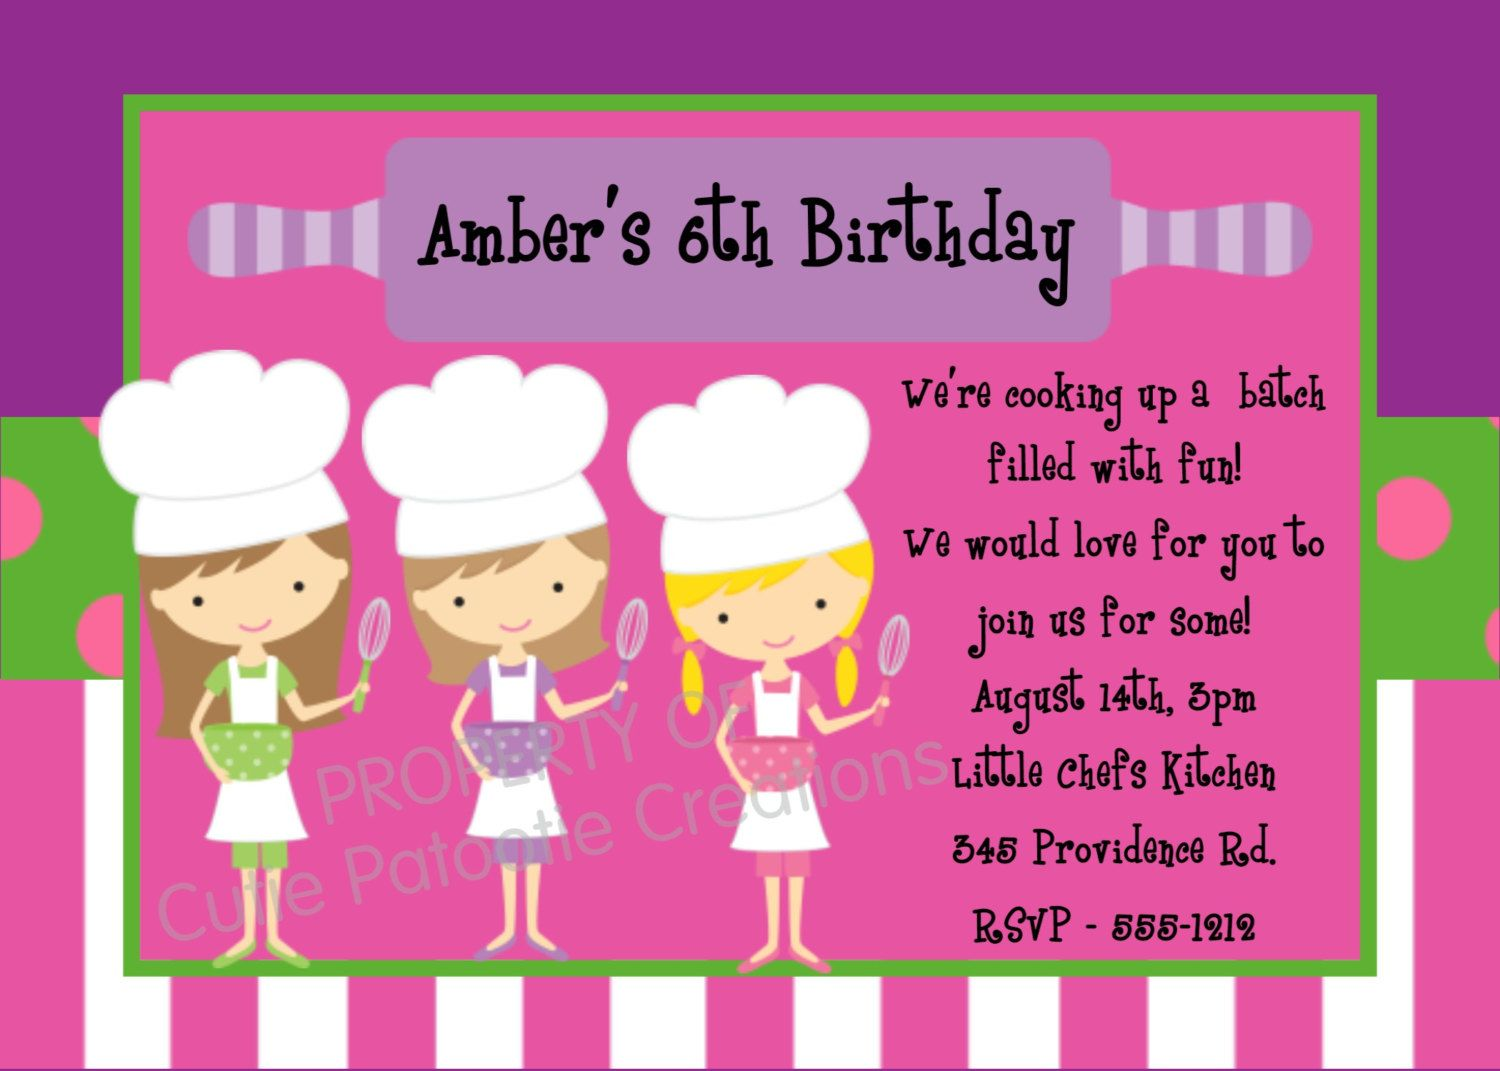 Print Birthday Invitations for Free | Birthdays and Party invitations